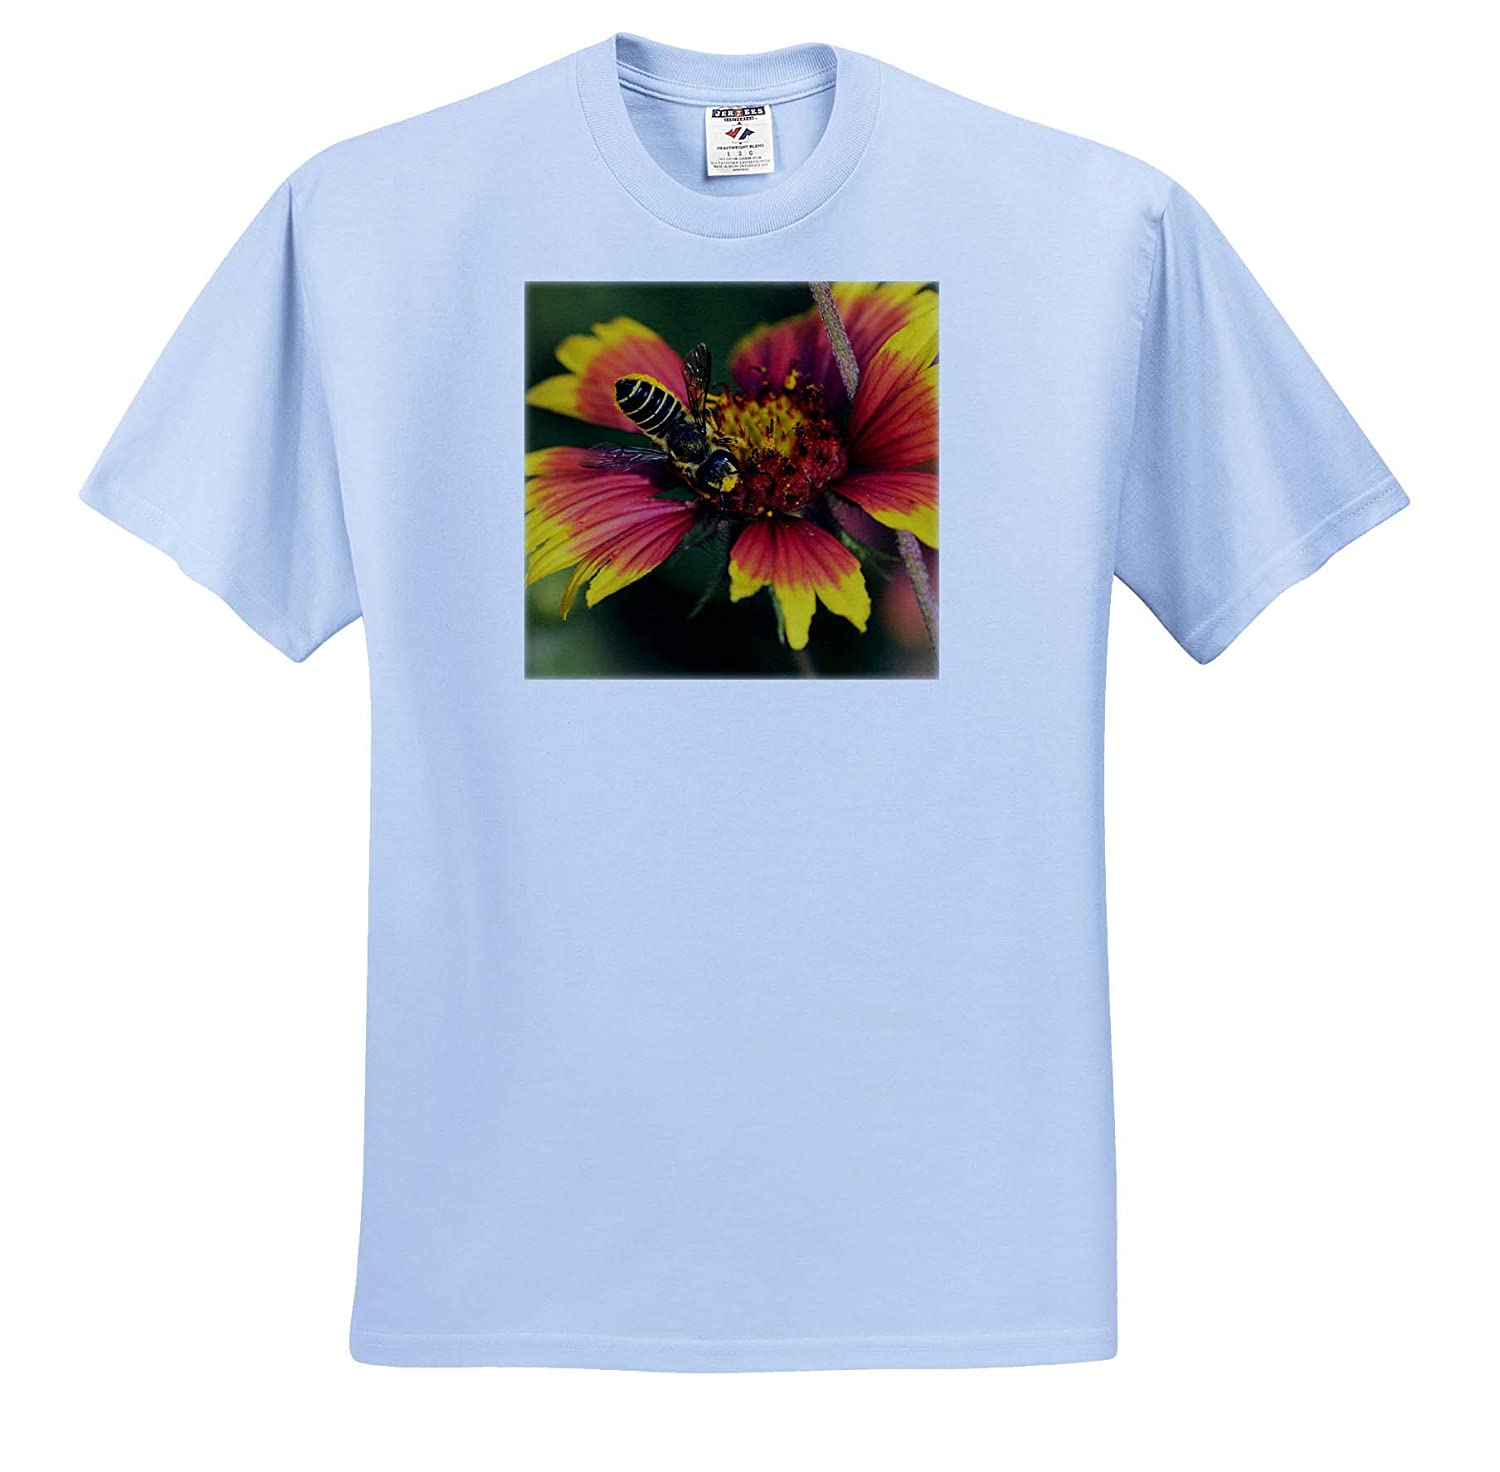 ts/_315048 Leafcutter bee Adult Feeding on Indian Blanket,Texas Adult T-Shirt XL 3dRose Danita Delimont Bees USA